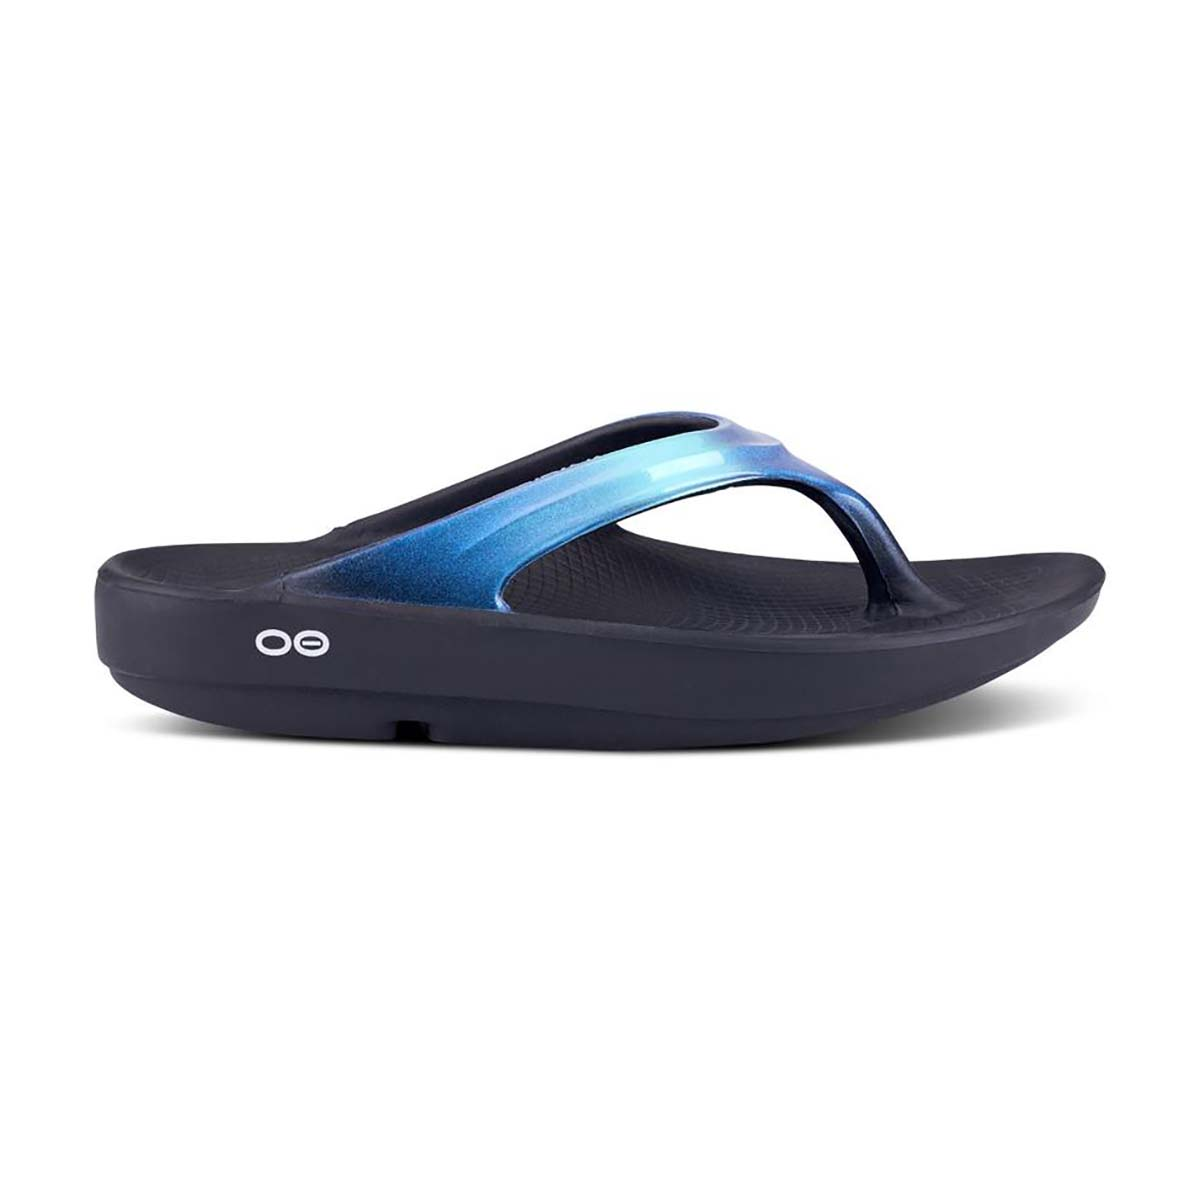 Women's Oofos Oolala Luxe Recovery Sandal - Color: Atlantis - Size: 11 - Width: Regular, Atlantis, large, image 2